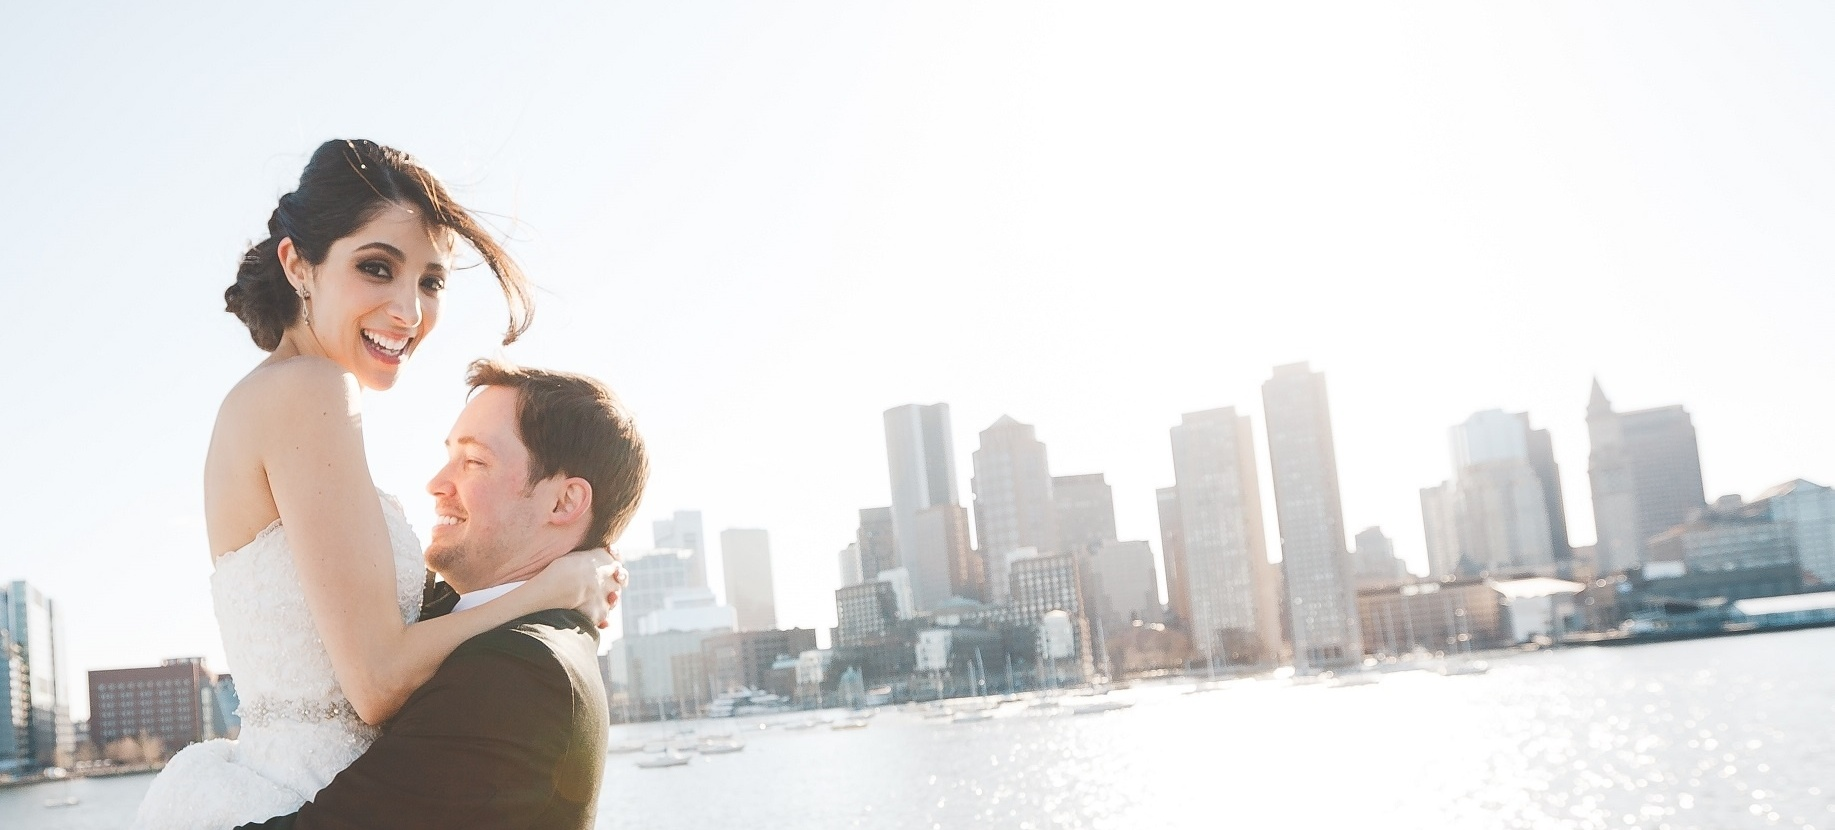 Why Boston Is Actually A Pretty Amazing Place To Tie The Knot